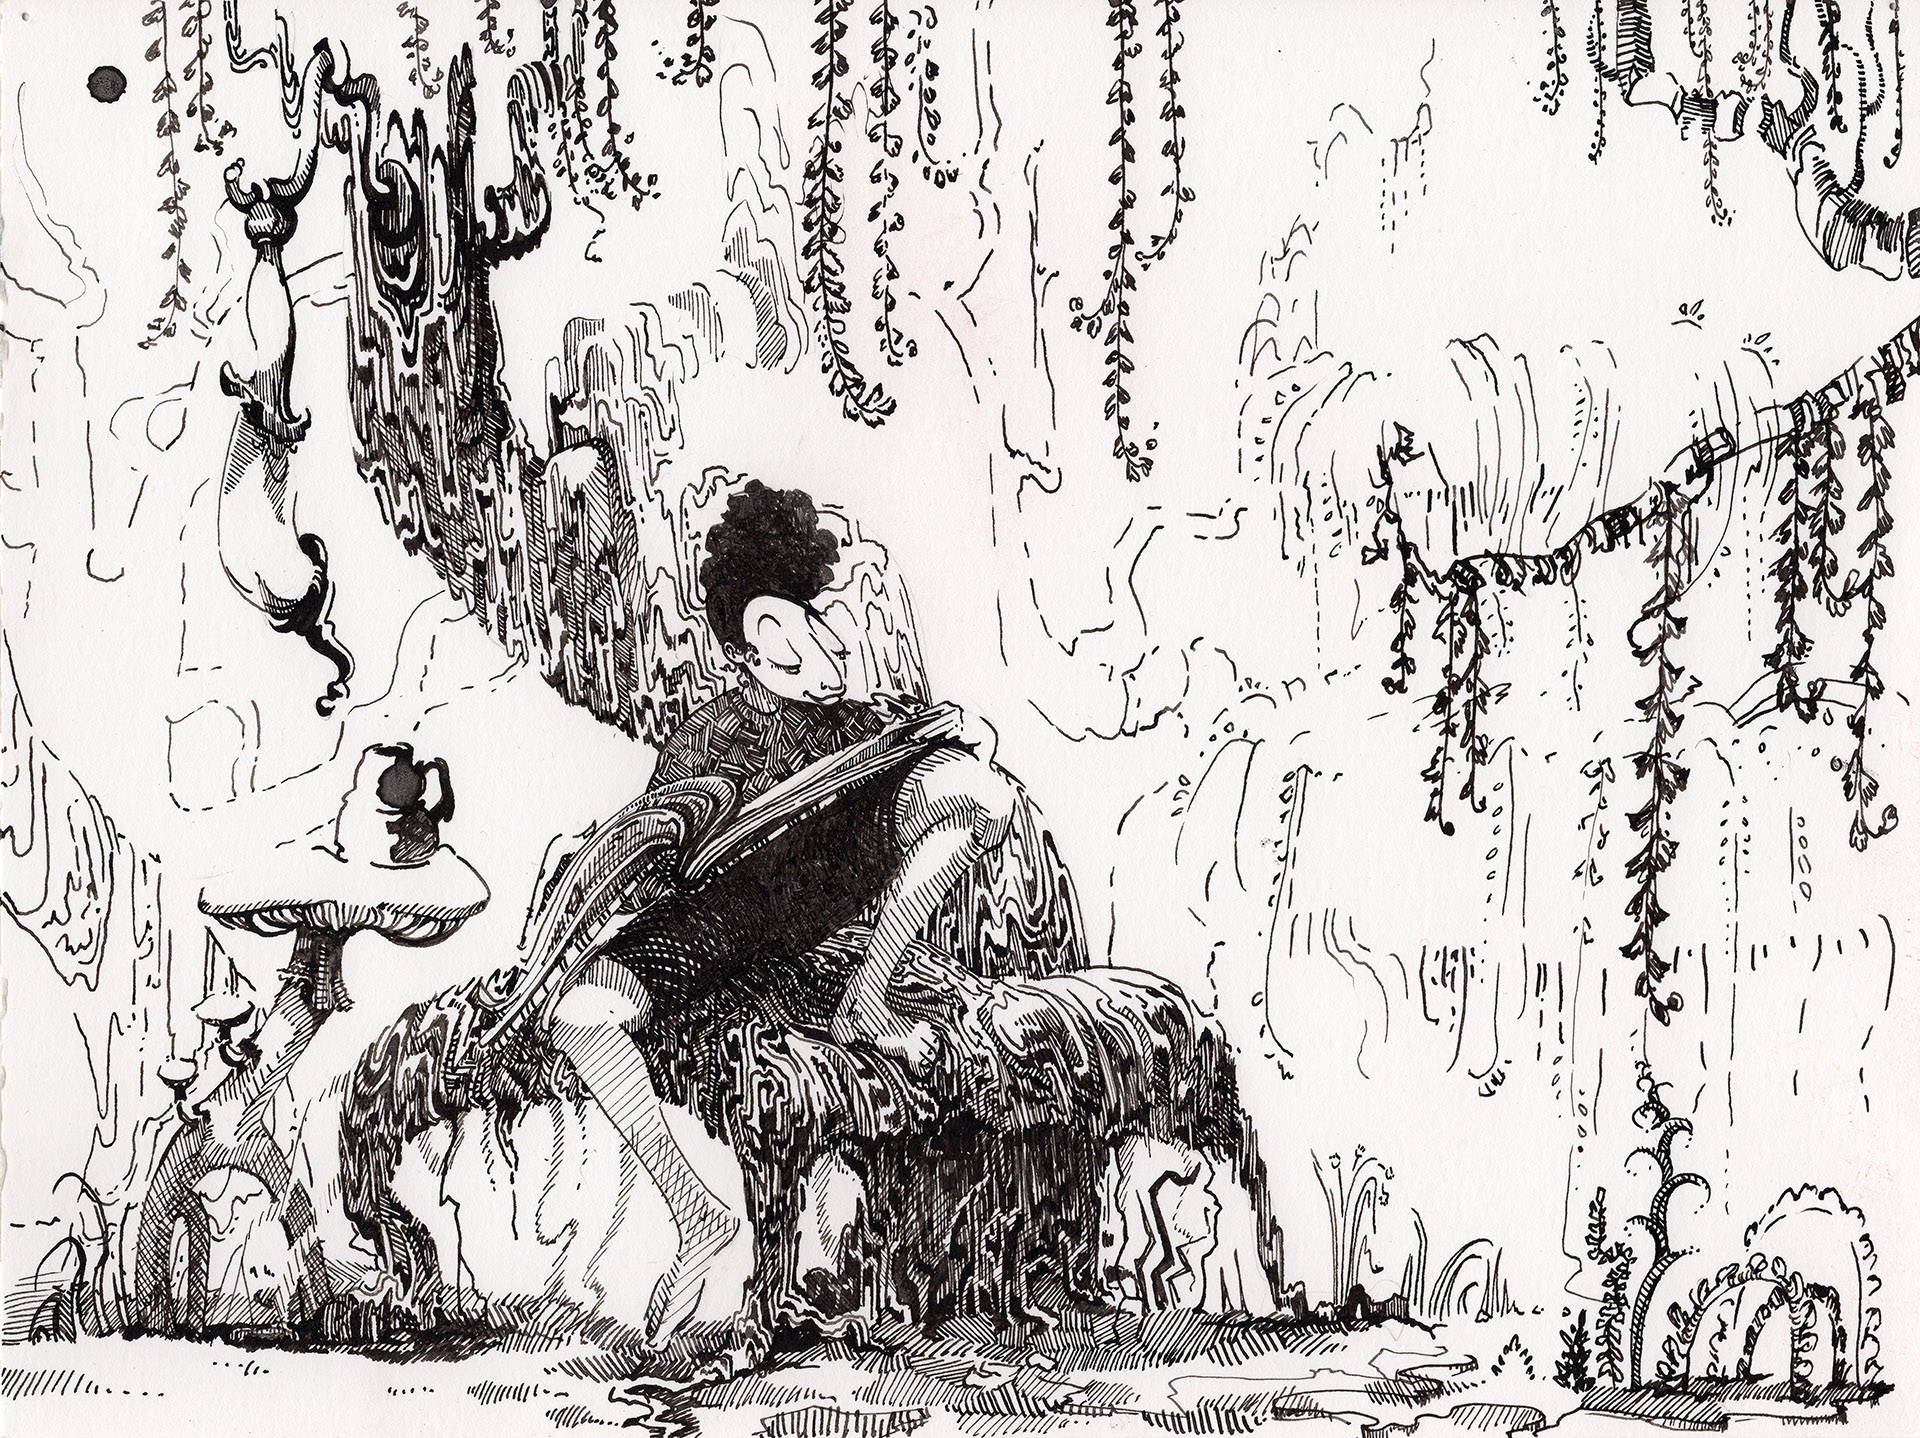 A drawing in a drippy fairytale world I've been building for fun. Ink on paper